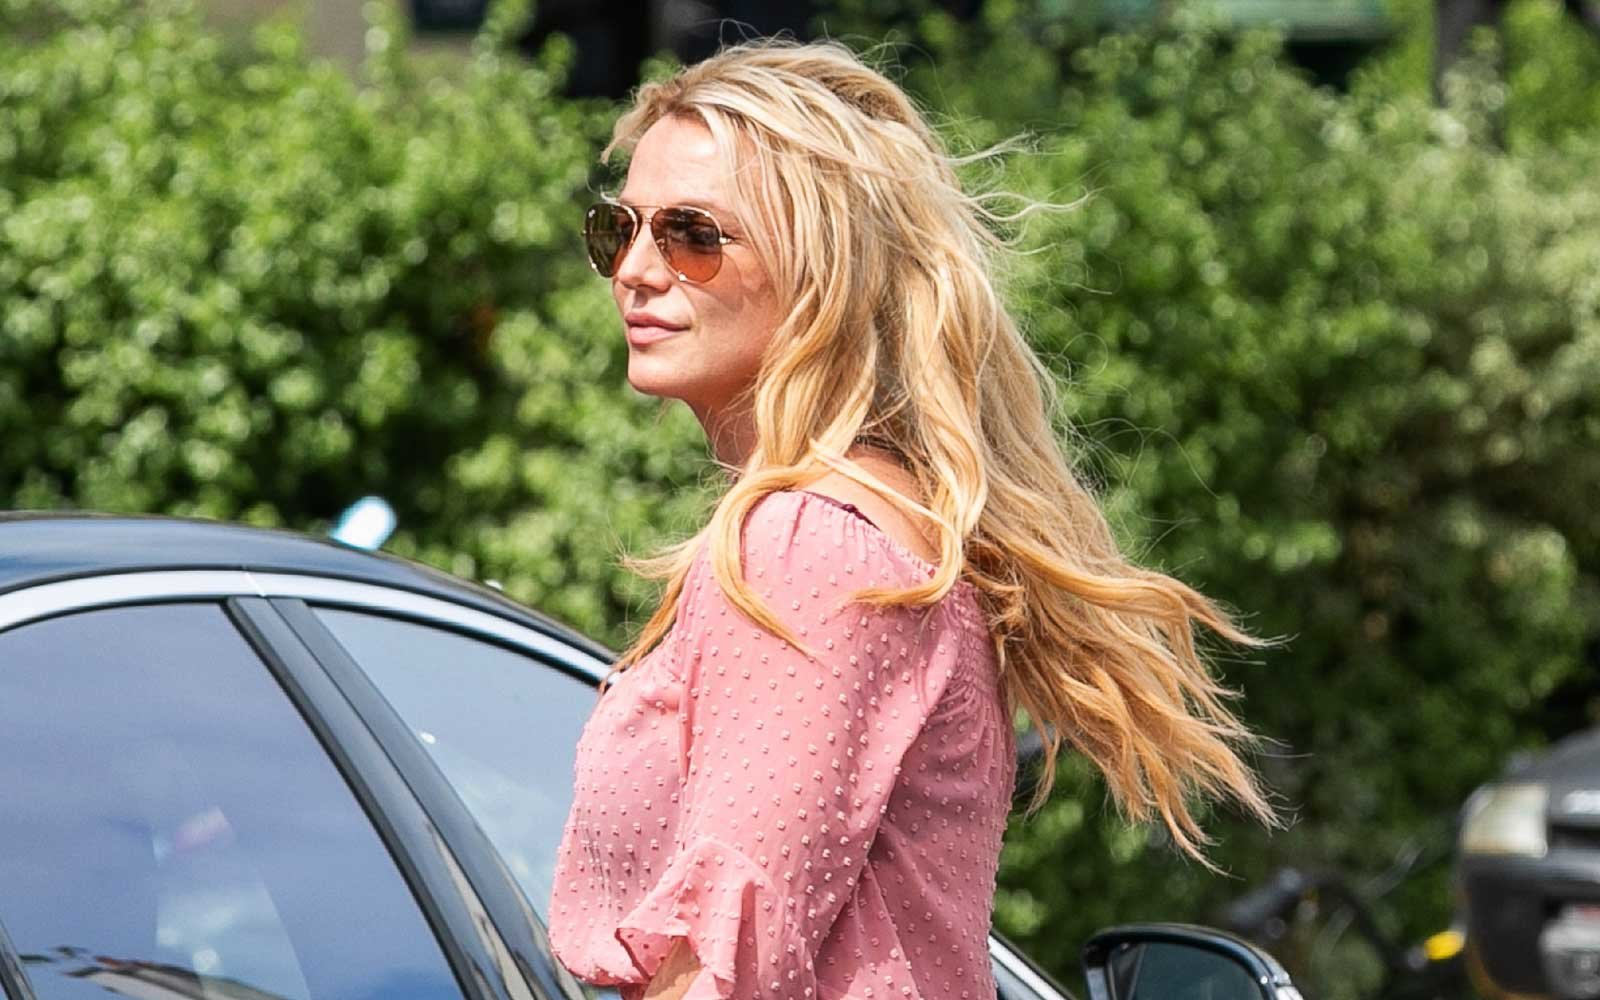 Britney Spears Spotted in Paris